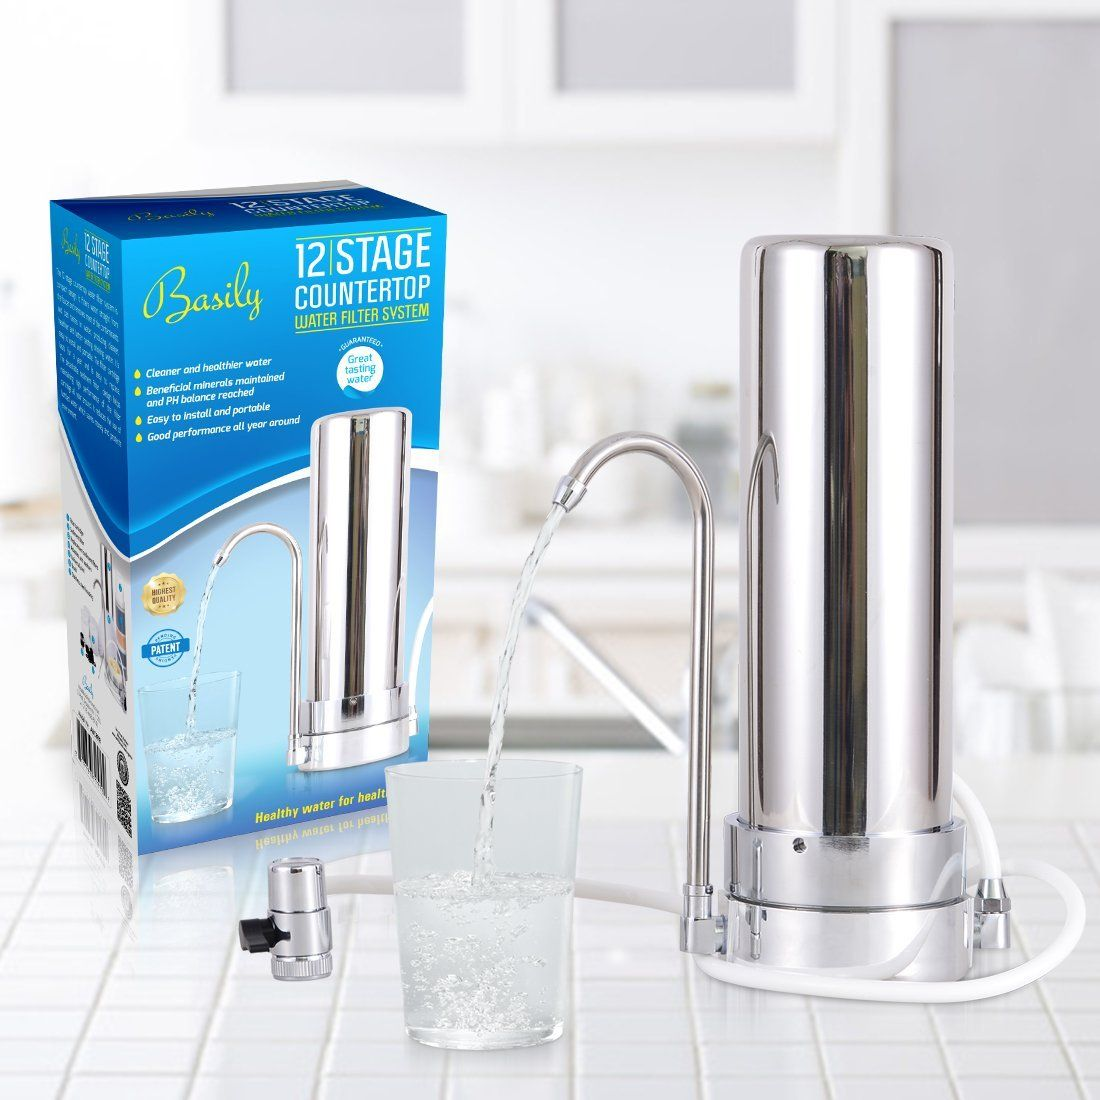 9 Best Countertop Water Filter Plus 1 To Avoid 2021 Buyers Guide Freshnss Countertop Water Filter Water Filter Best Water Filter